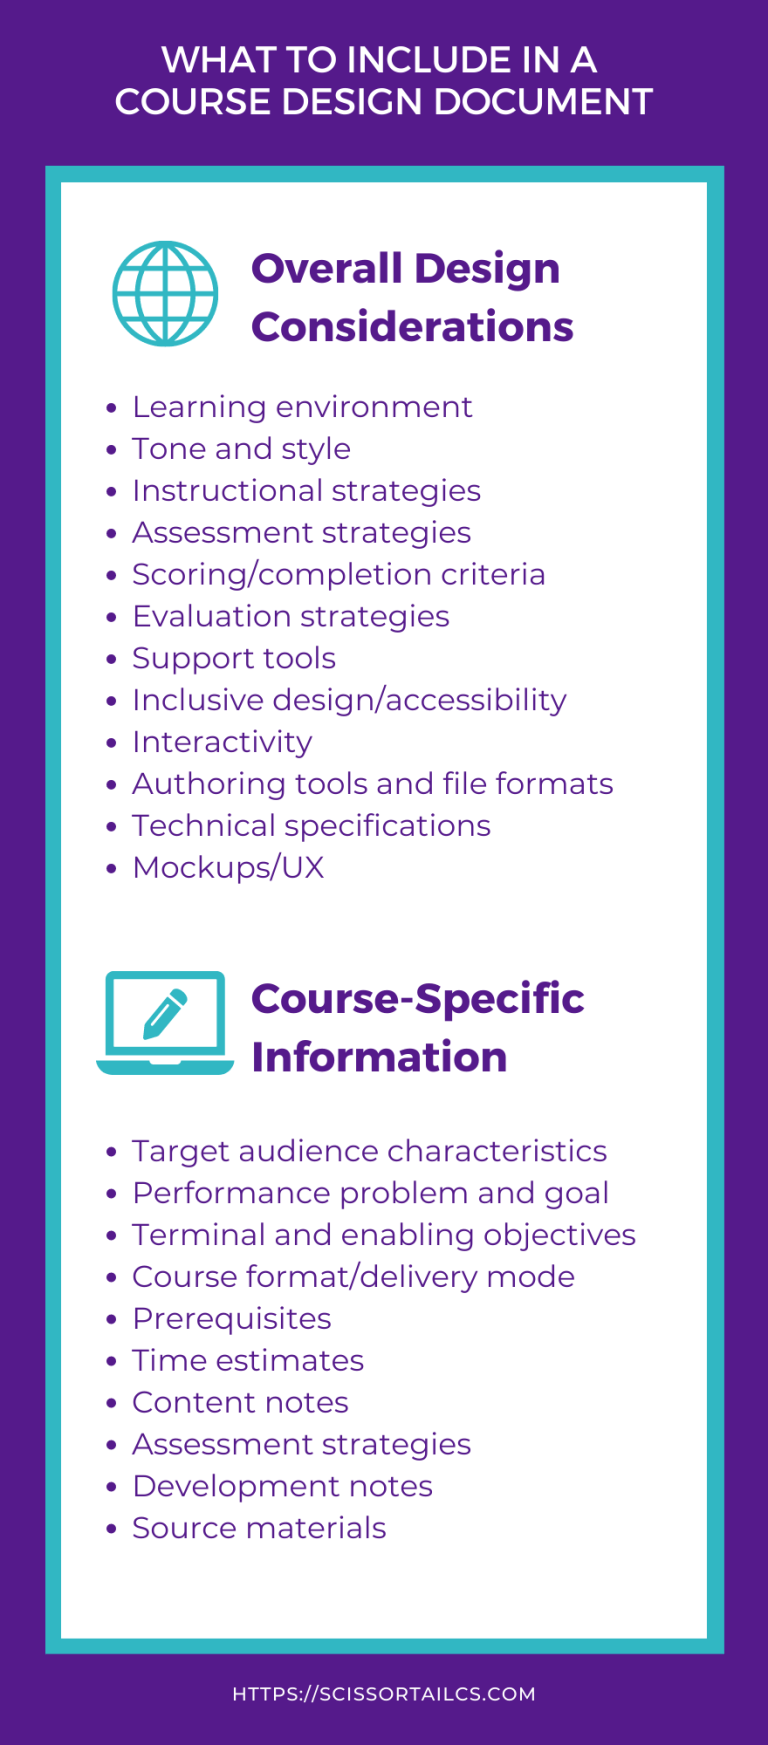 What to Include in a Course Design Document. List of overall design considerations and course-specific information. See blog post text for details.